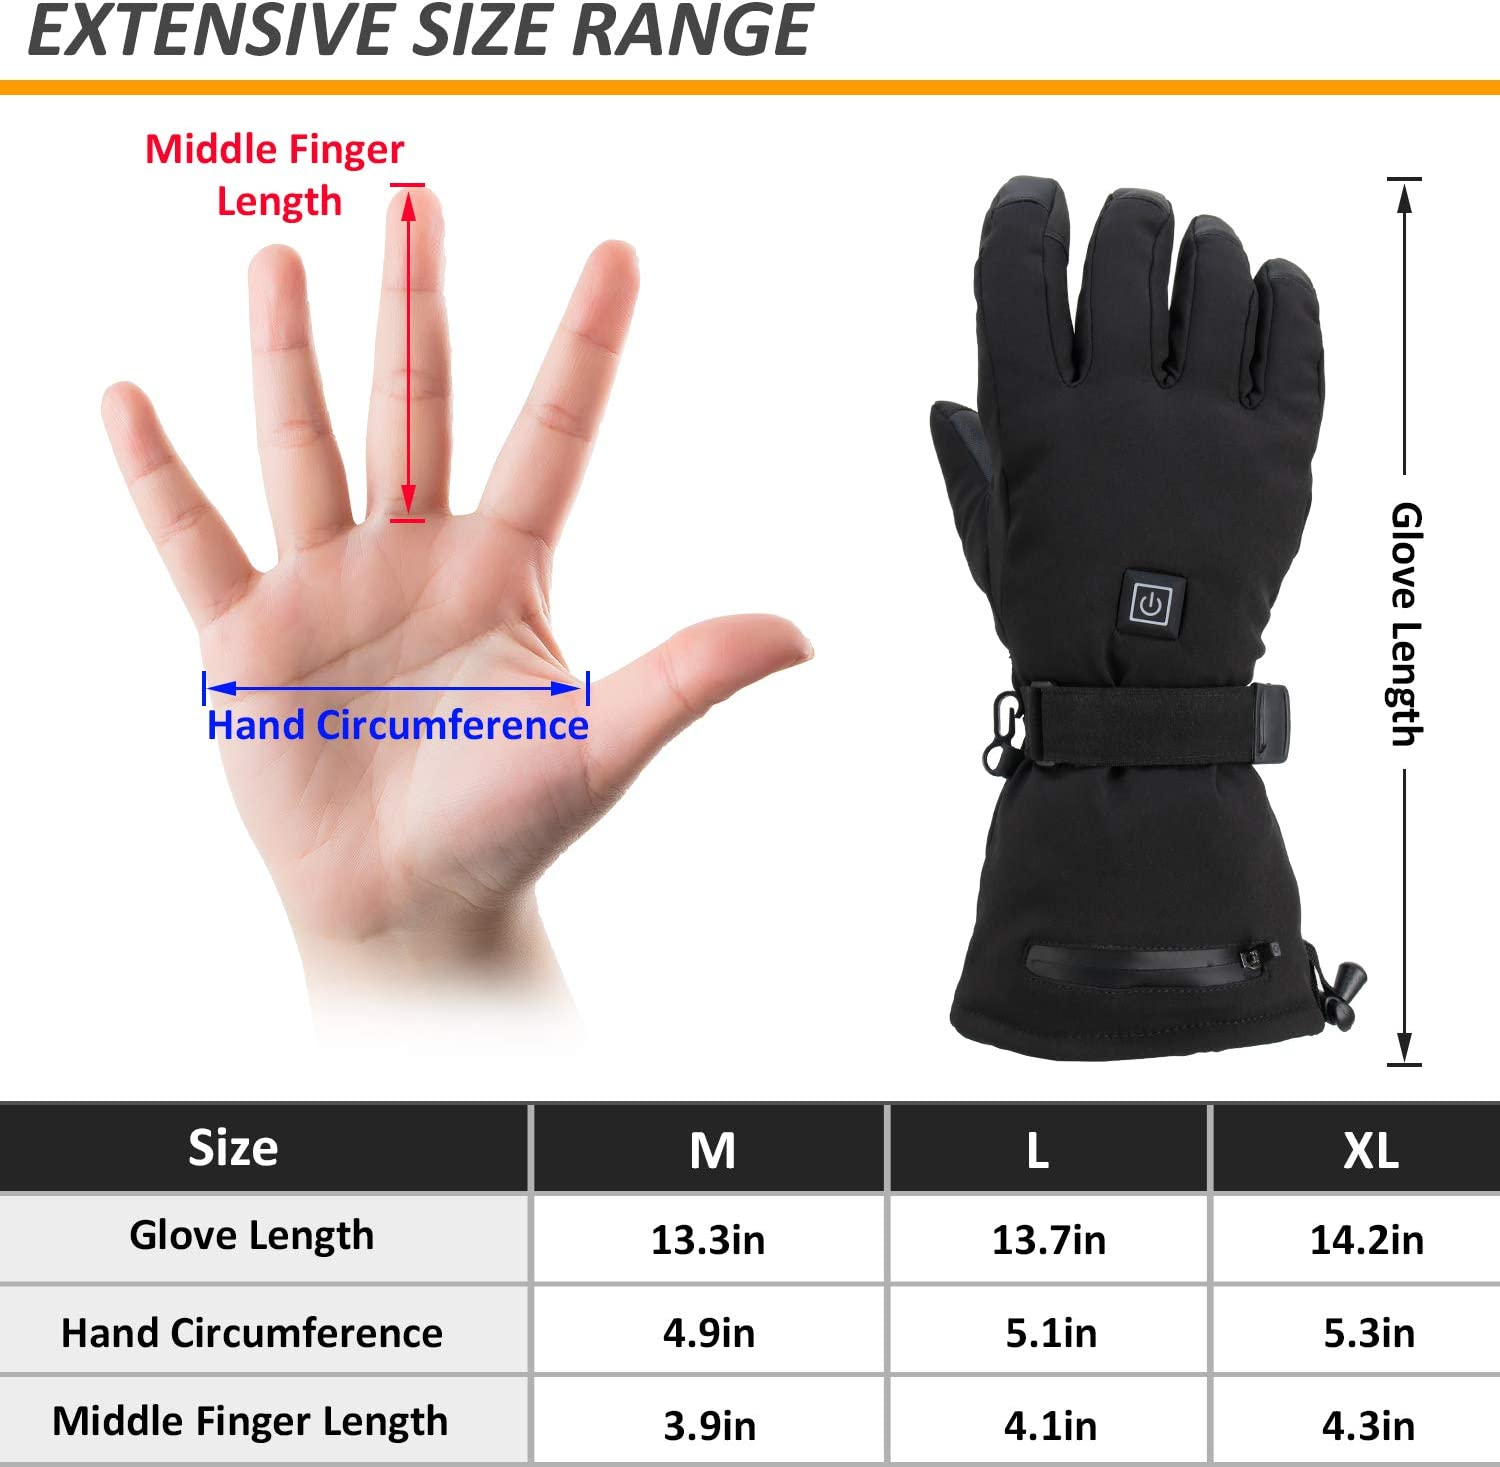 Hiking 3.7V //3600MAH-Thermal Insulate Gloves for Climbing 2020 Latest Electric Heated Gloves with Rechargeable Battery Thermal Gloves Hand Warmer Gloves 3 Levels Temperature Control Skiing 3M